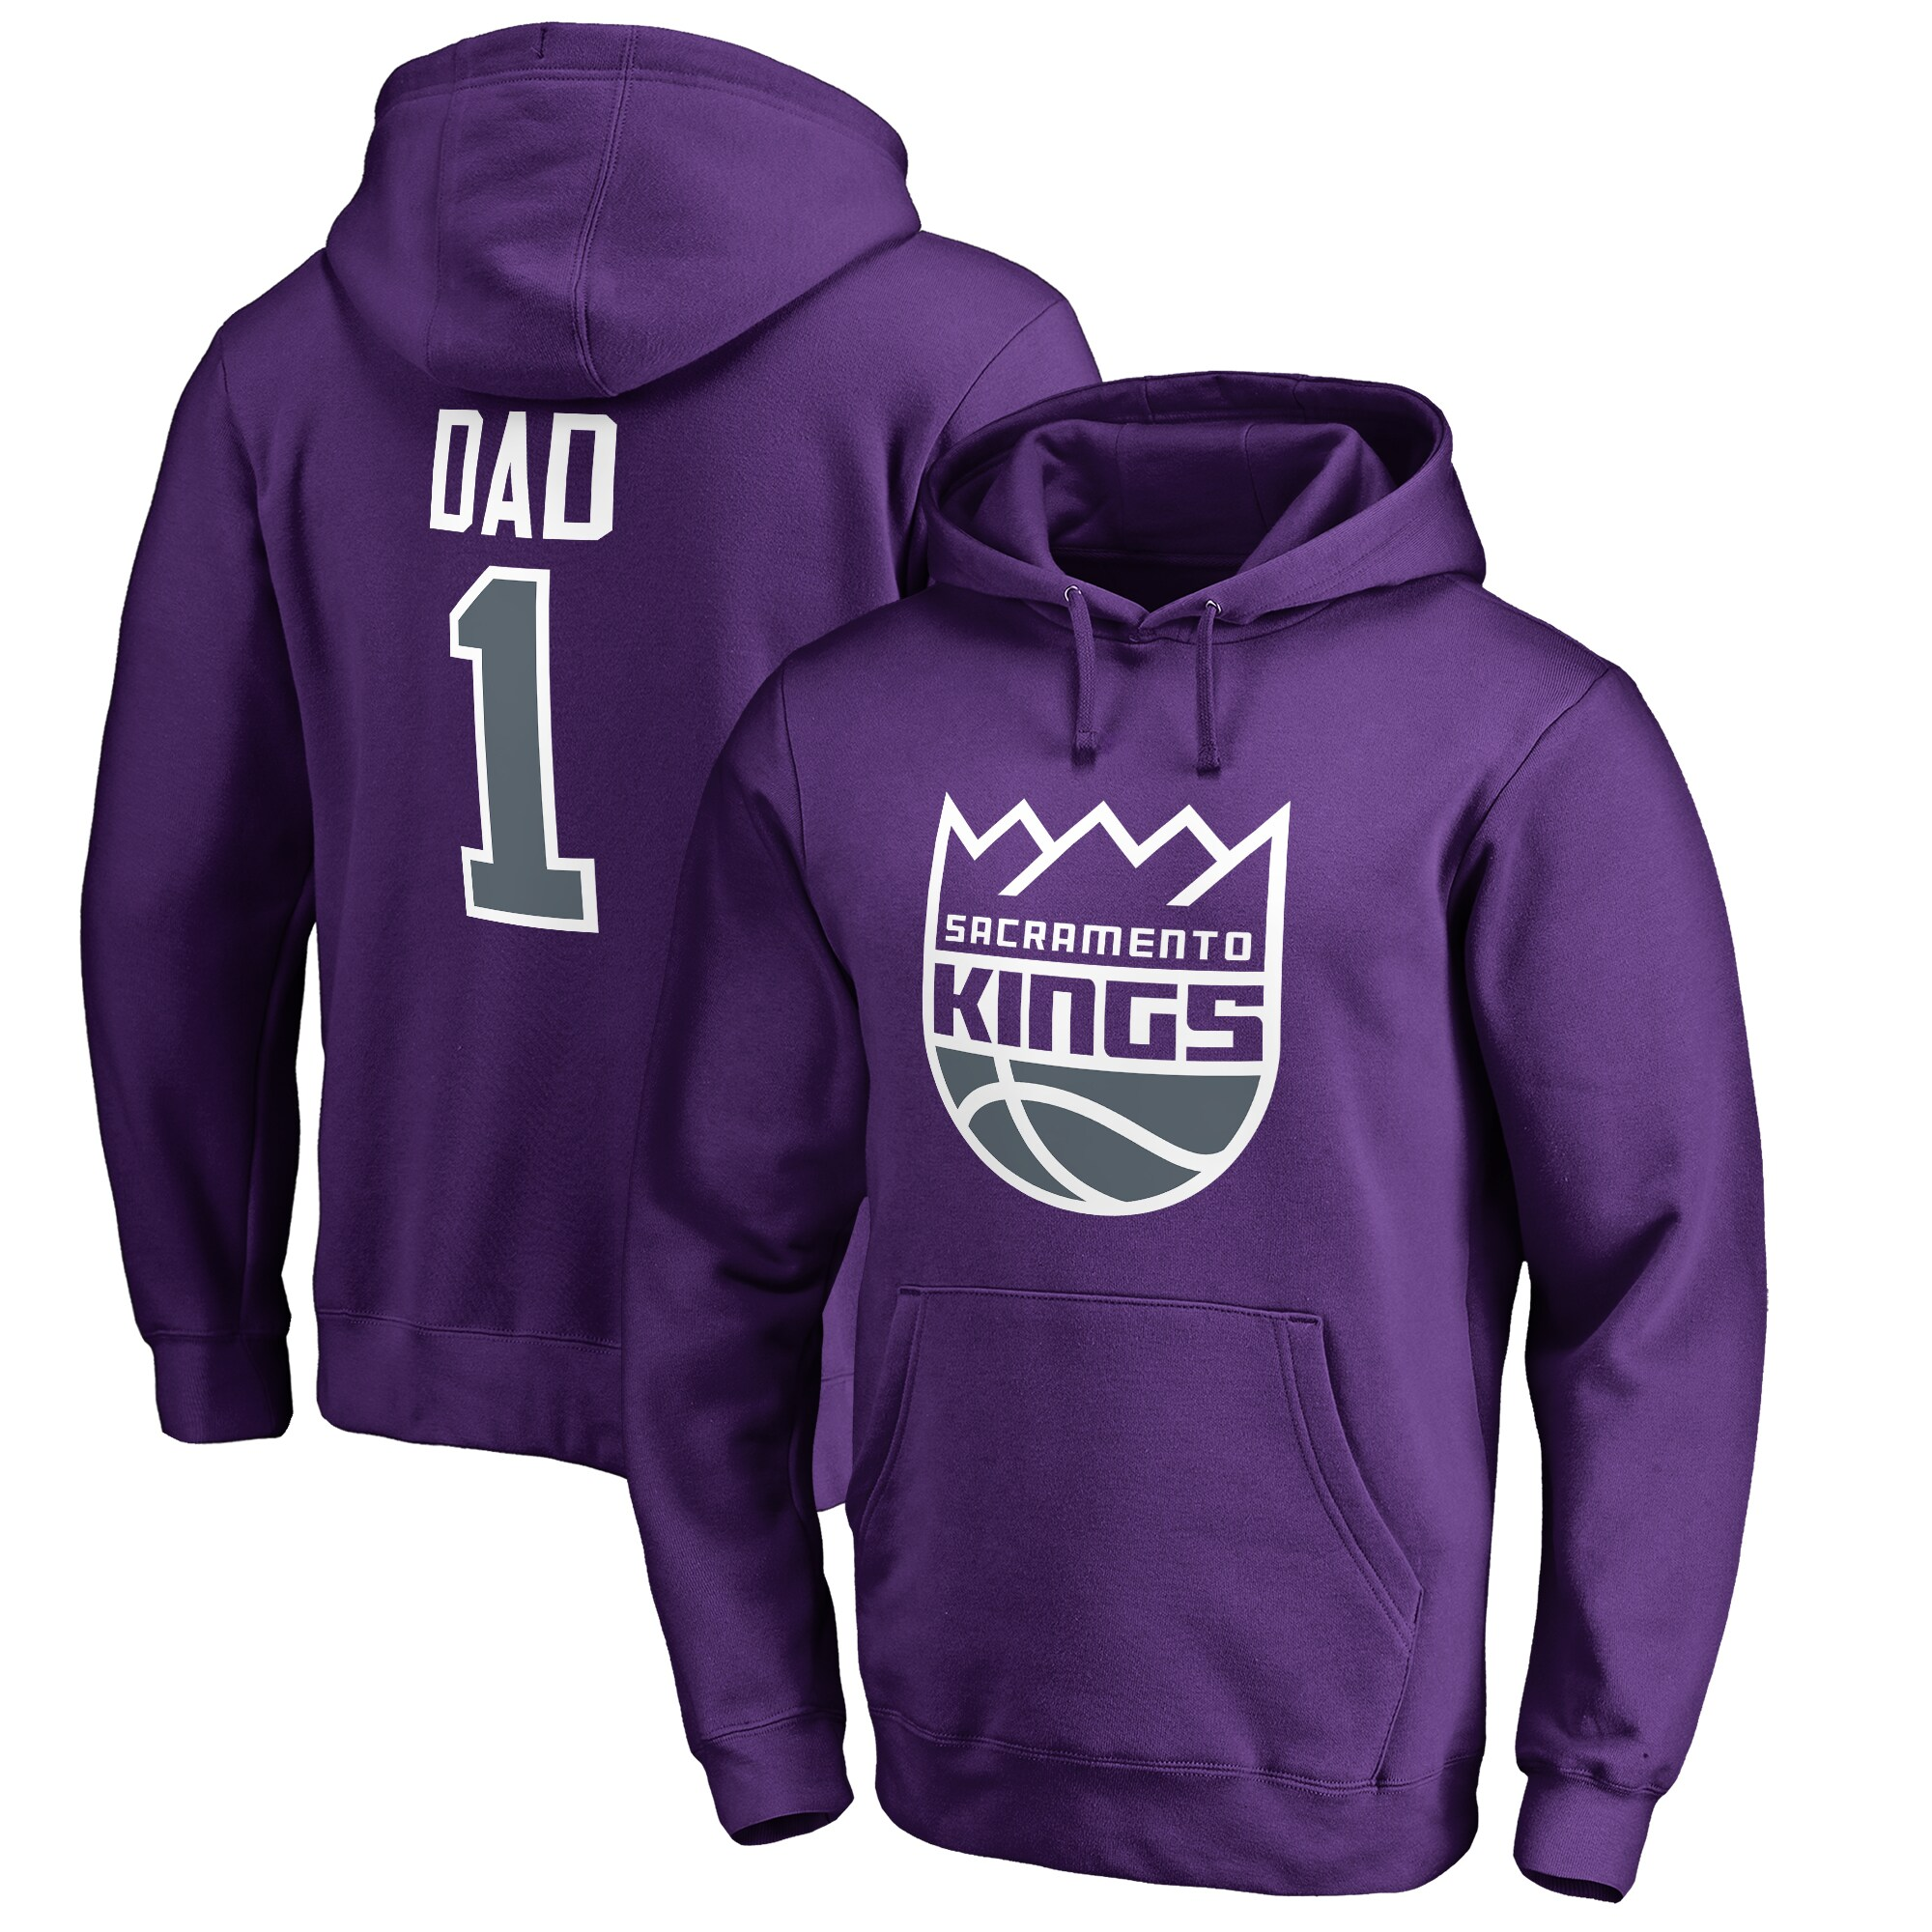 Sacramento Kings #1 Dad Pullover Hoodie - Purple